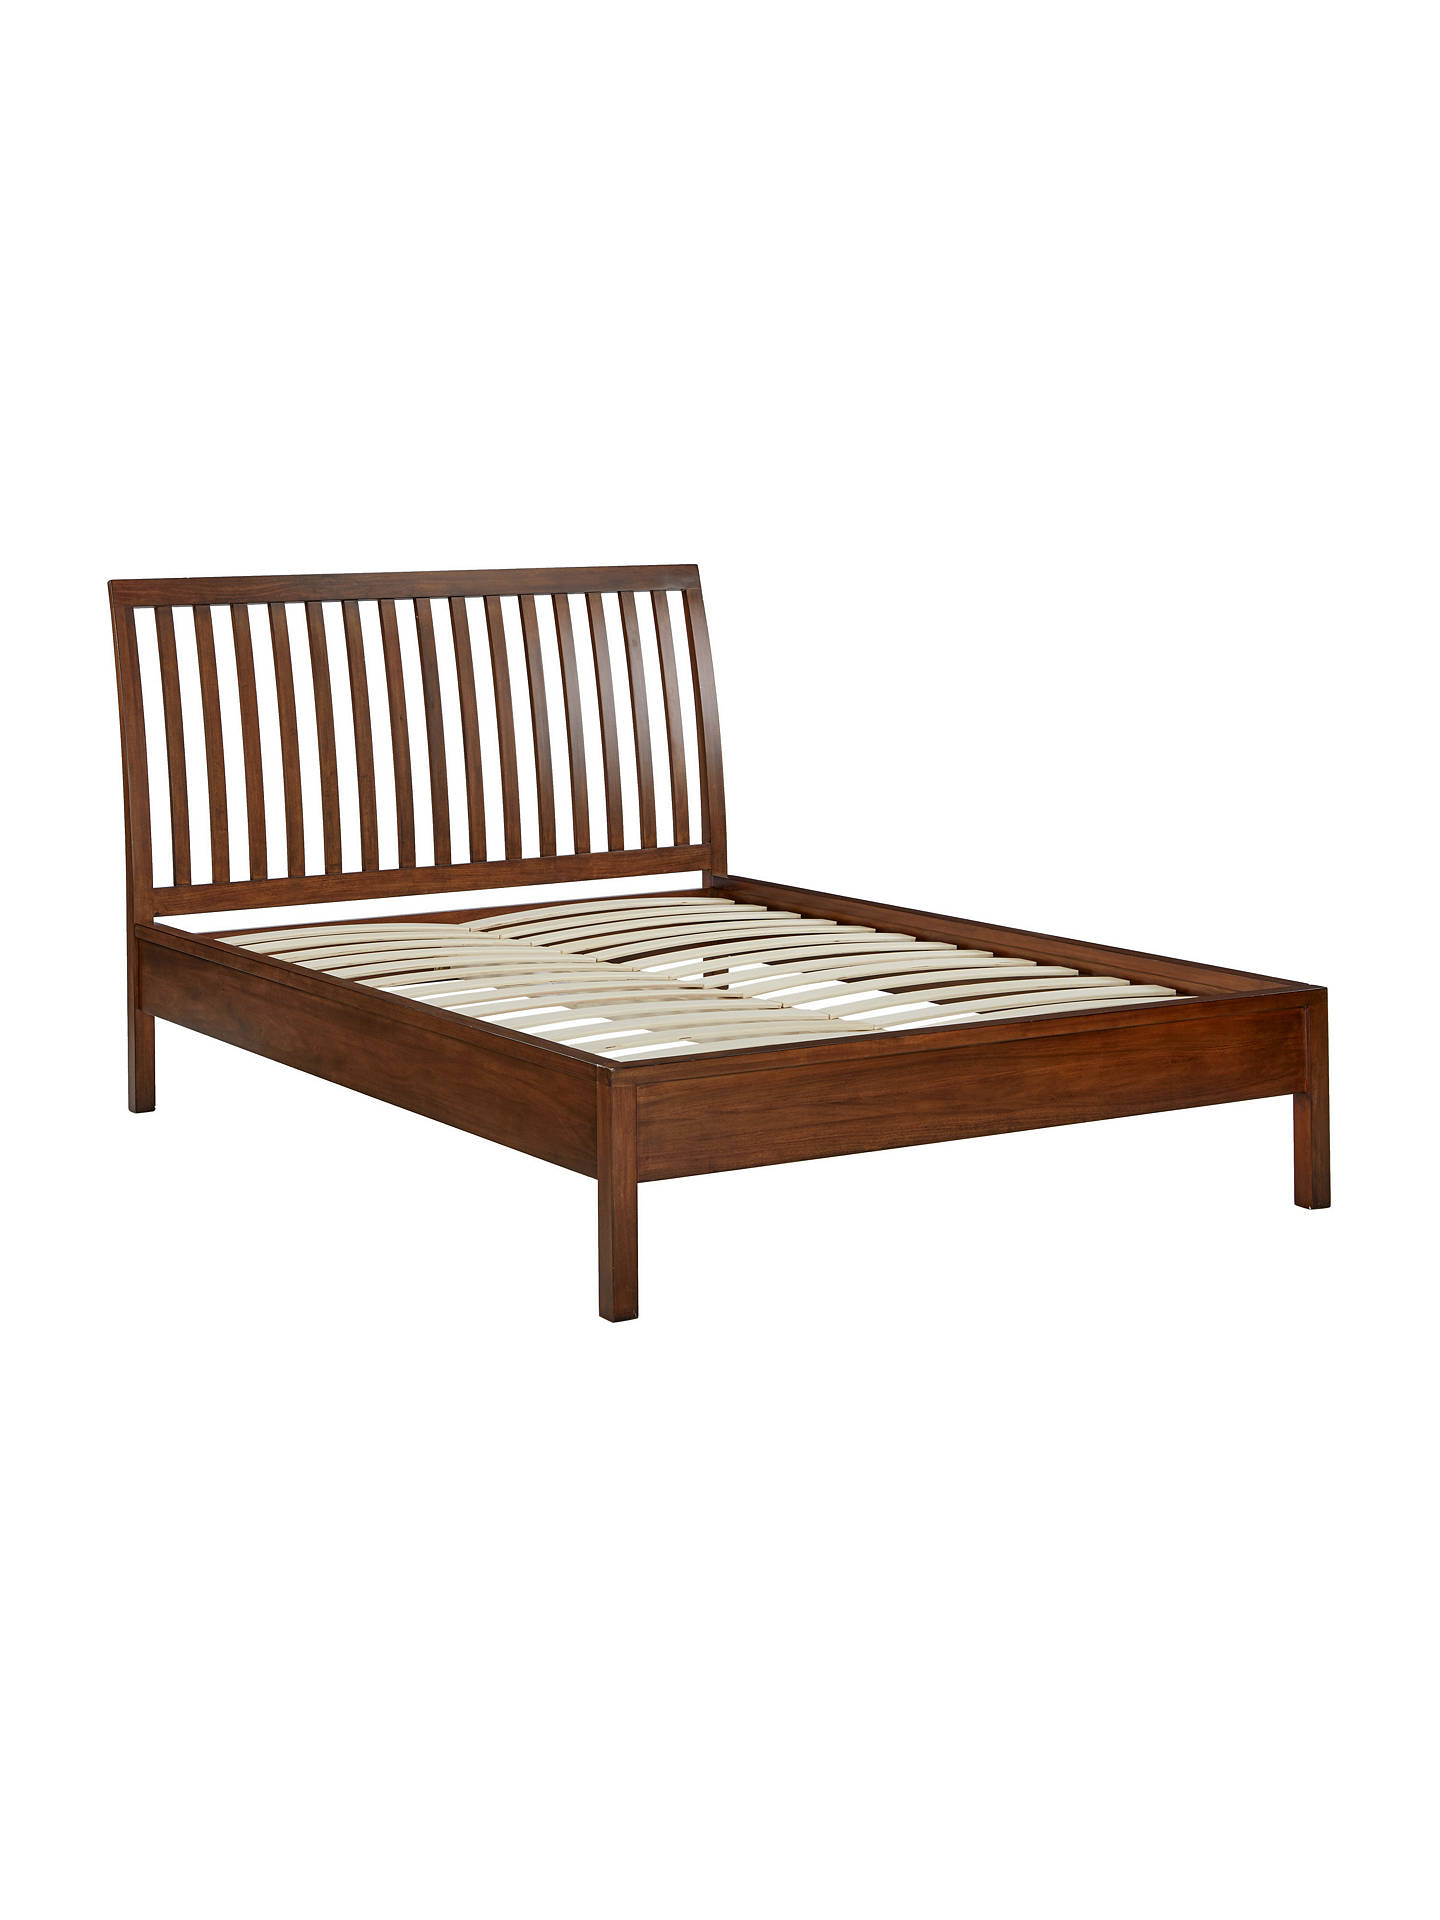 best website dfd0b 6b923 John Lewis & Partners Medan Bed Frame, Super King Size, Dark Wood